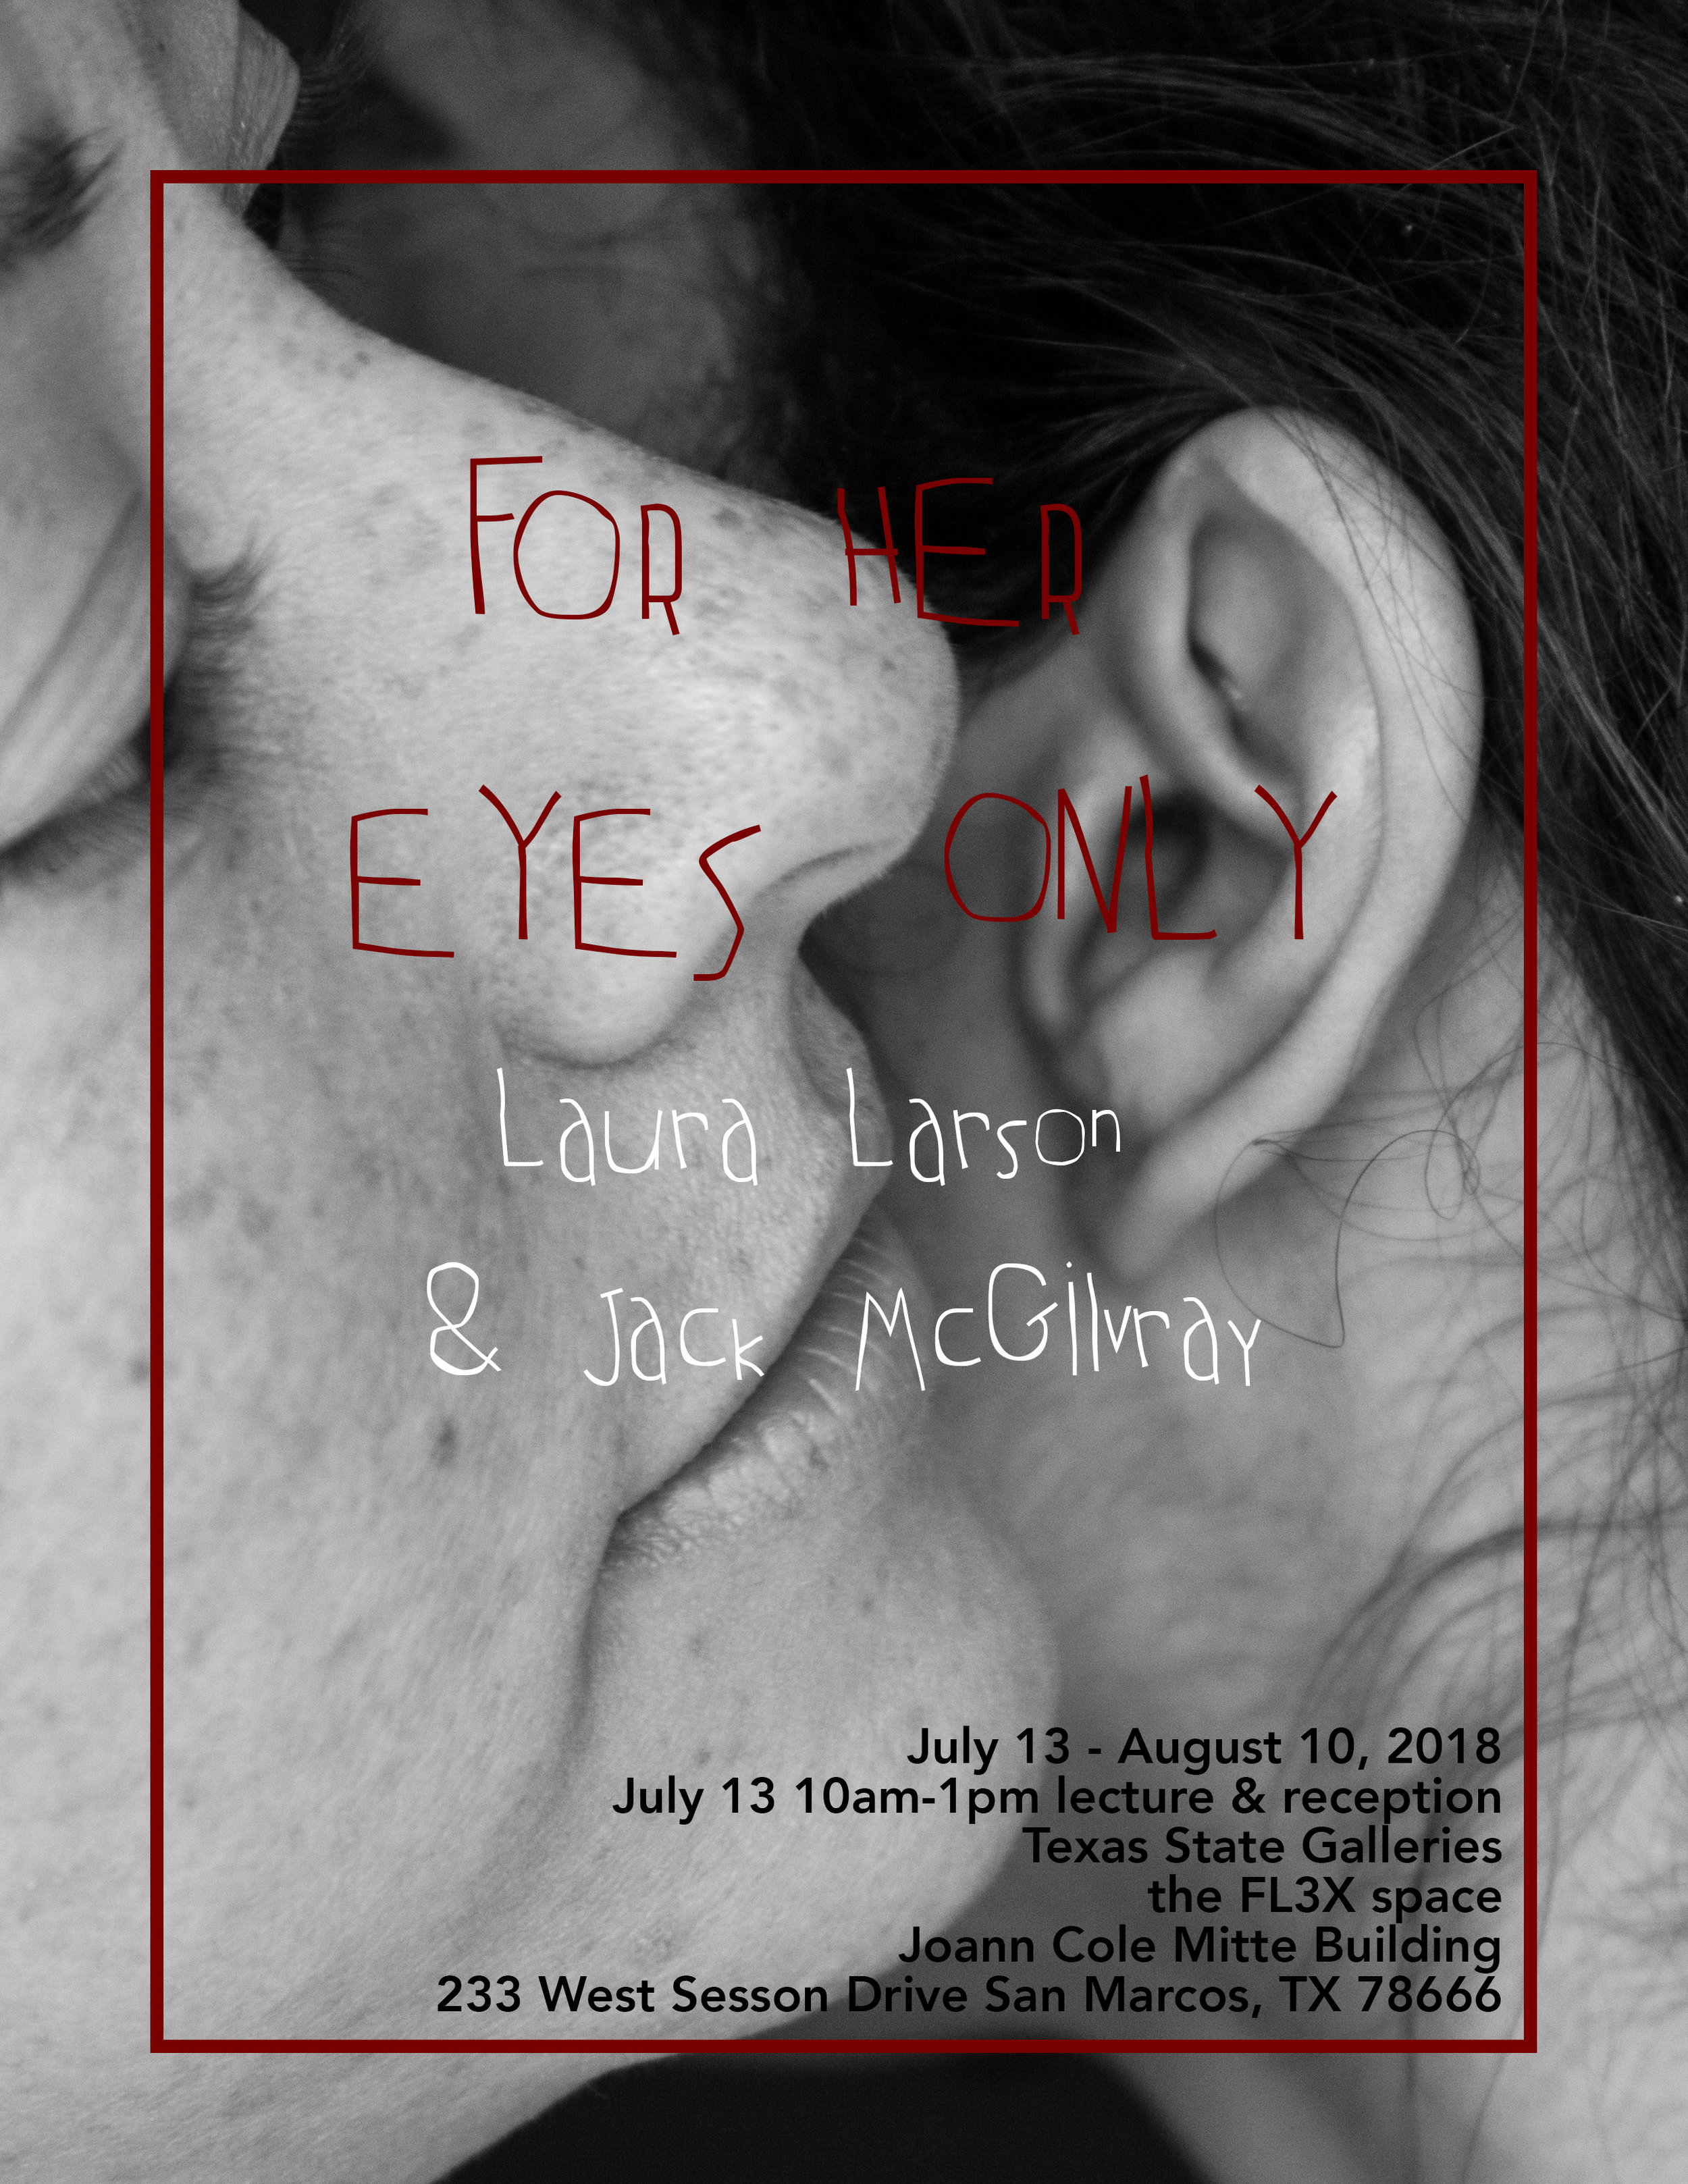 For Her Eyes Only (Laura Larson and Jack McGilvray), FLEX space exhibition, On view July 13–August 10, 2018